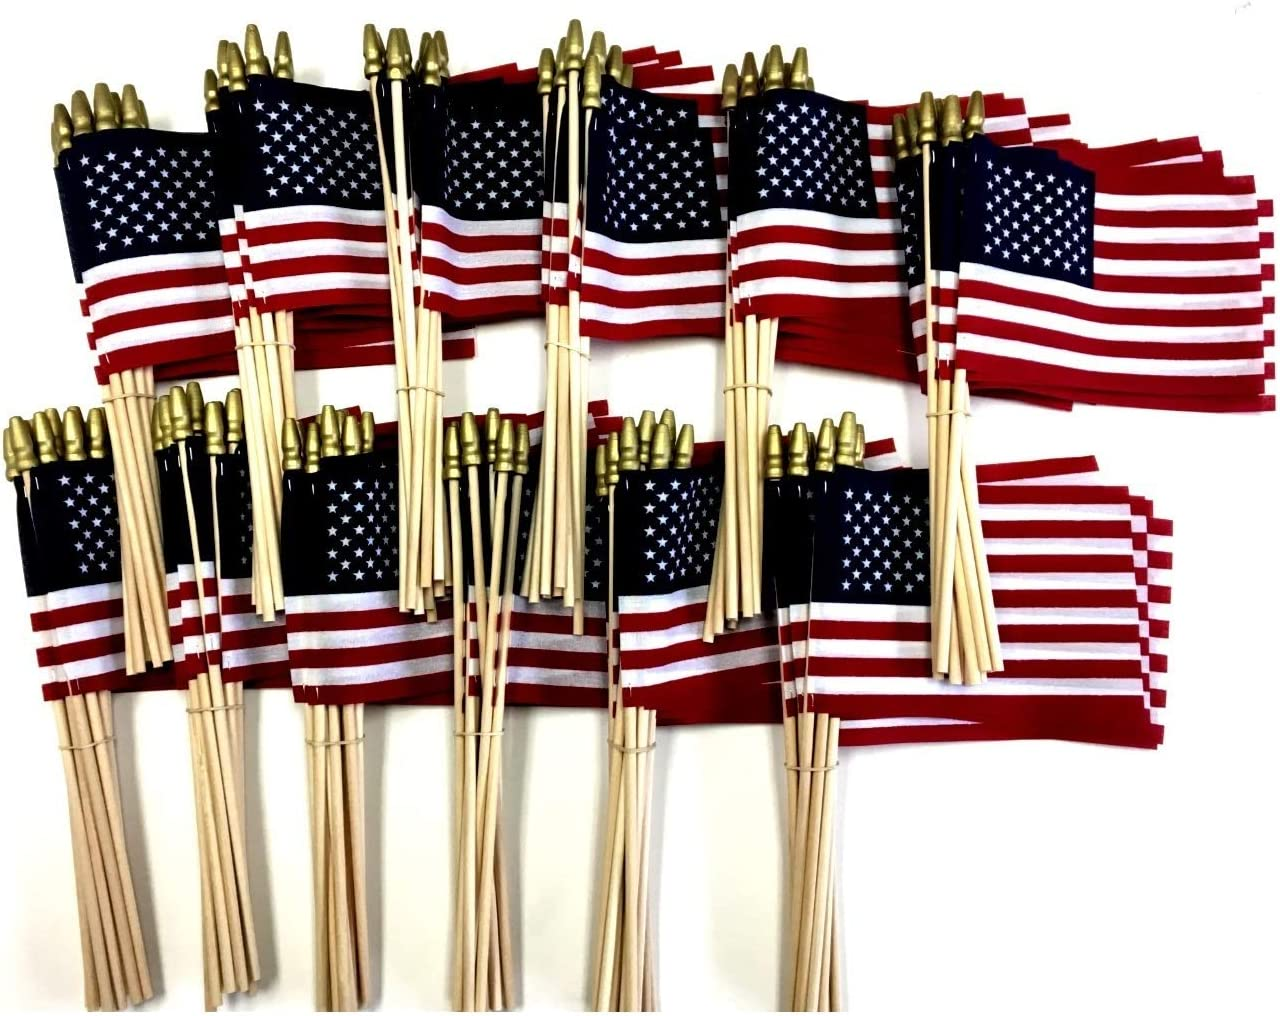 Amazon Com Made In The Usa Wholesale Box Of 144 Cotton 4 X6 United States Miniature Desk Little Table Flags 12 Dozen 4 X 6 Cotton American Small Mini Handheld Waving Stick Flags